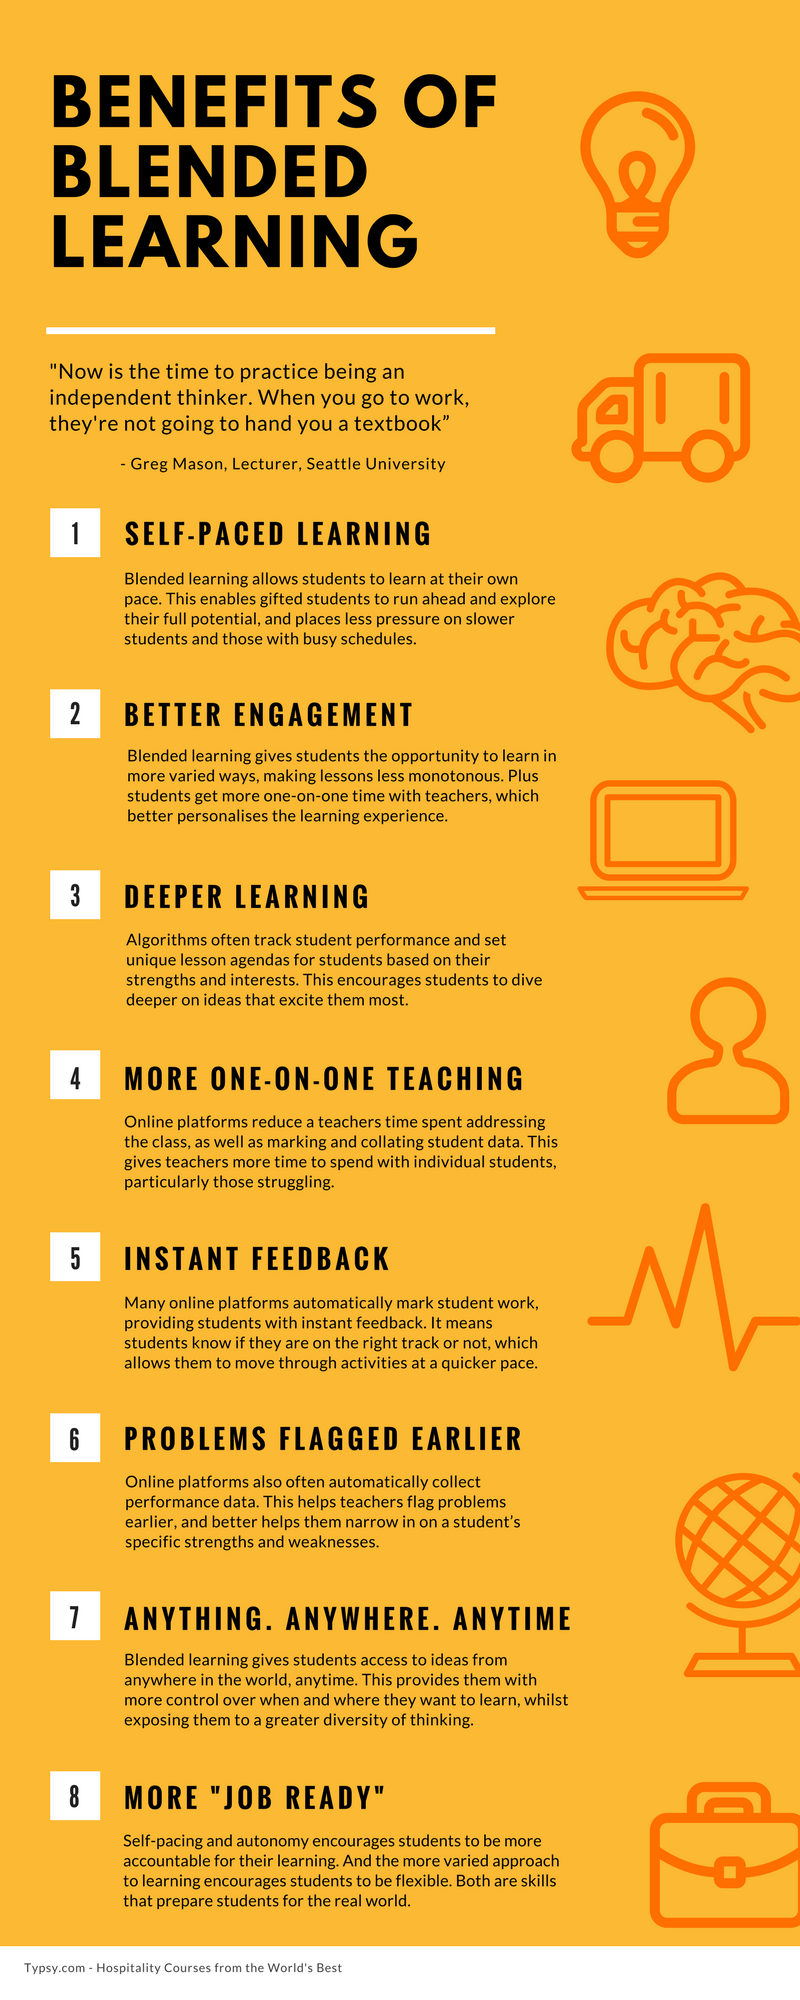 The Benefits of Blended Learning in Hospitality.png